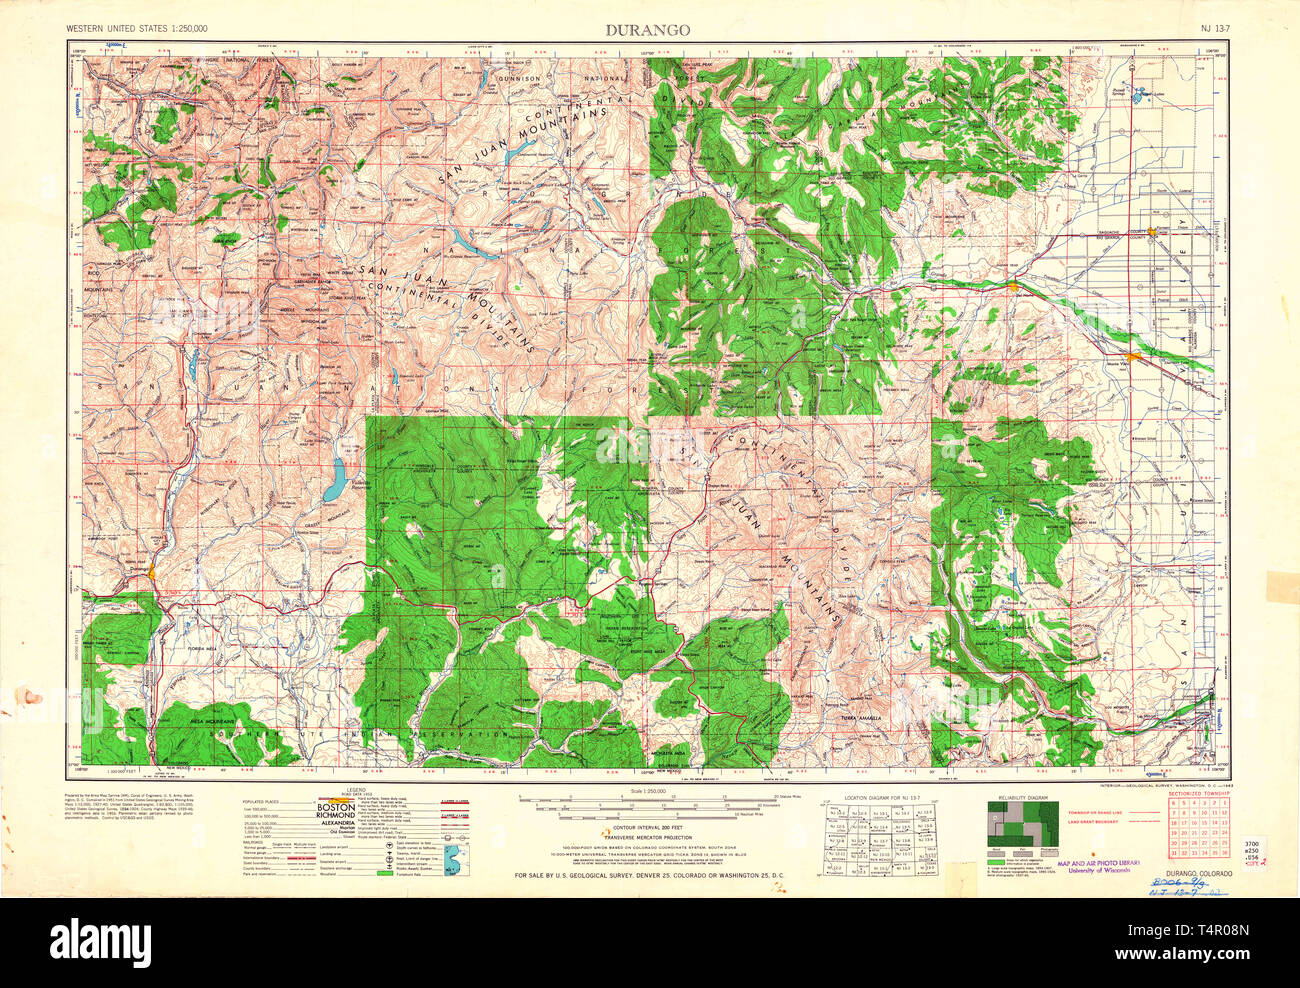 Durango Co Map on